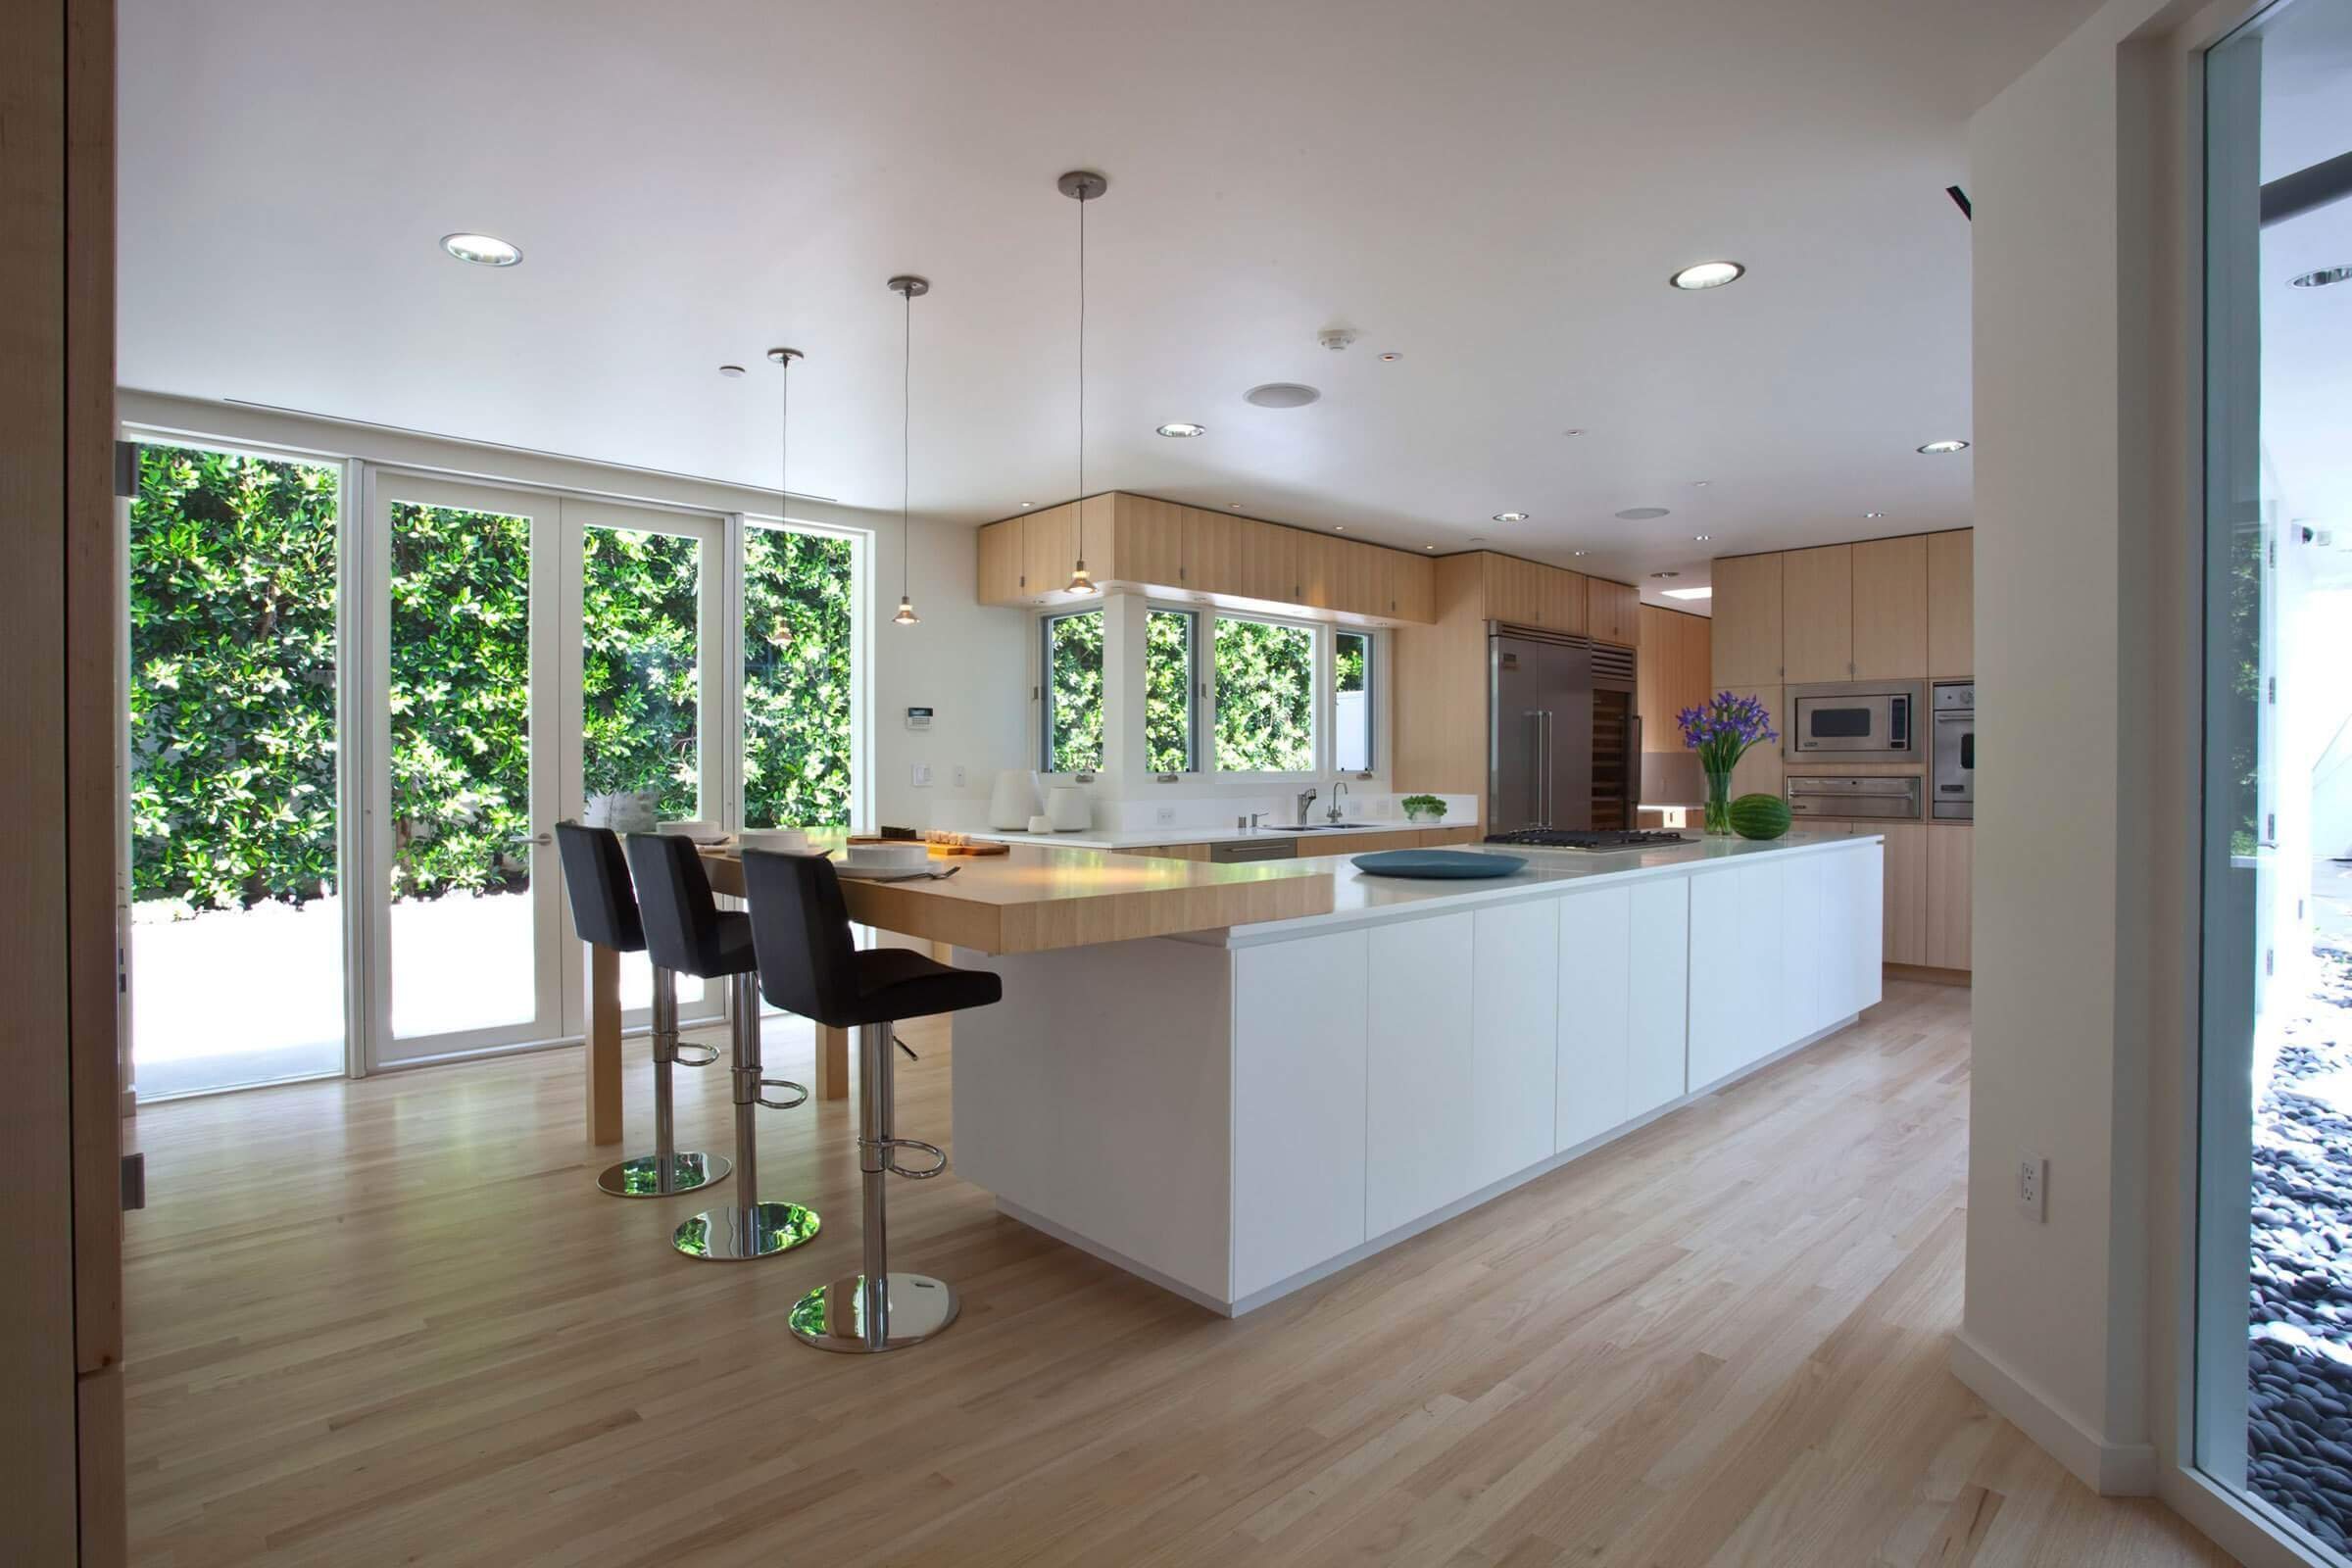 A large minimalist single–wall kitchen design with light brown cabinets, flat–panel cabinets, brown backsplash, stainless steel appliances, solid surface countertops, hardwood floors, and an eat–in island with contemporary kitchen breakfast bar stools